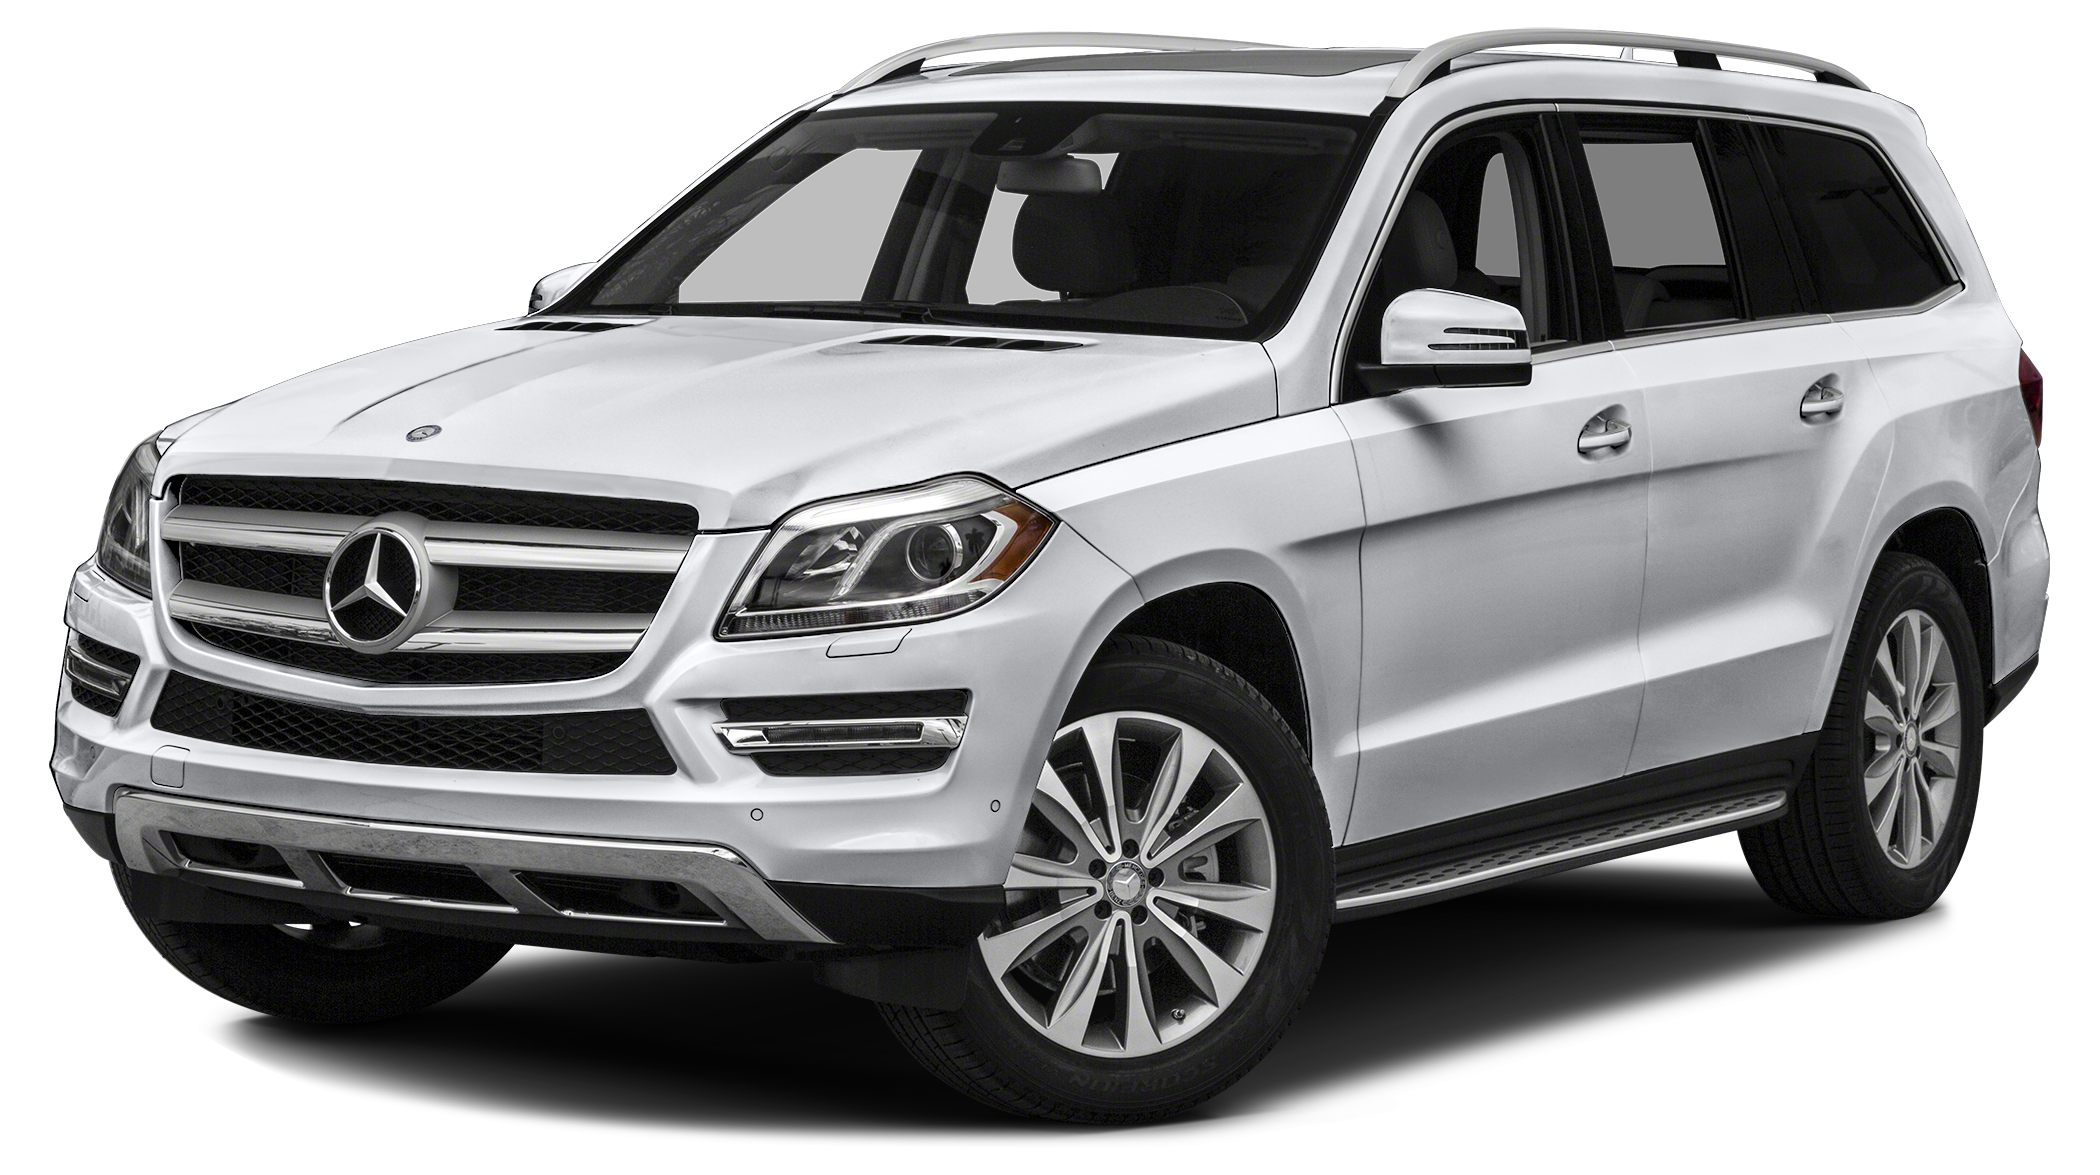 2016 MERCEDES GL-Class GL450 4MATIC Miles 5Color Polar White Stock 16A1084 VIN 4JGDF6EE1GA70